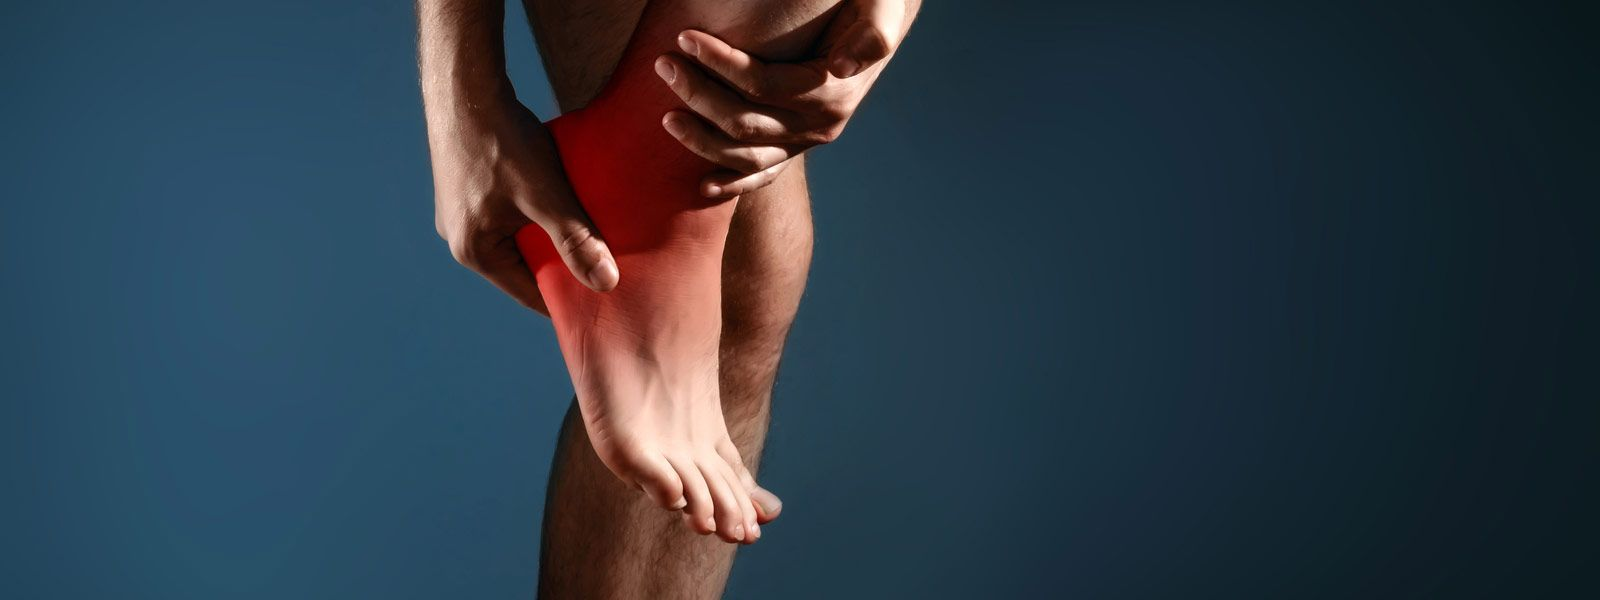 foot and ankle pain Reservoir